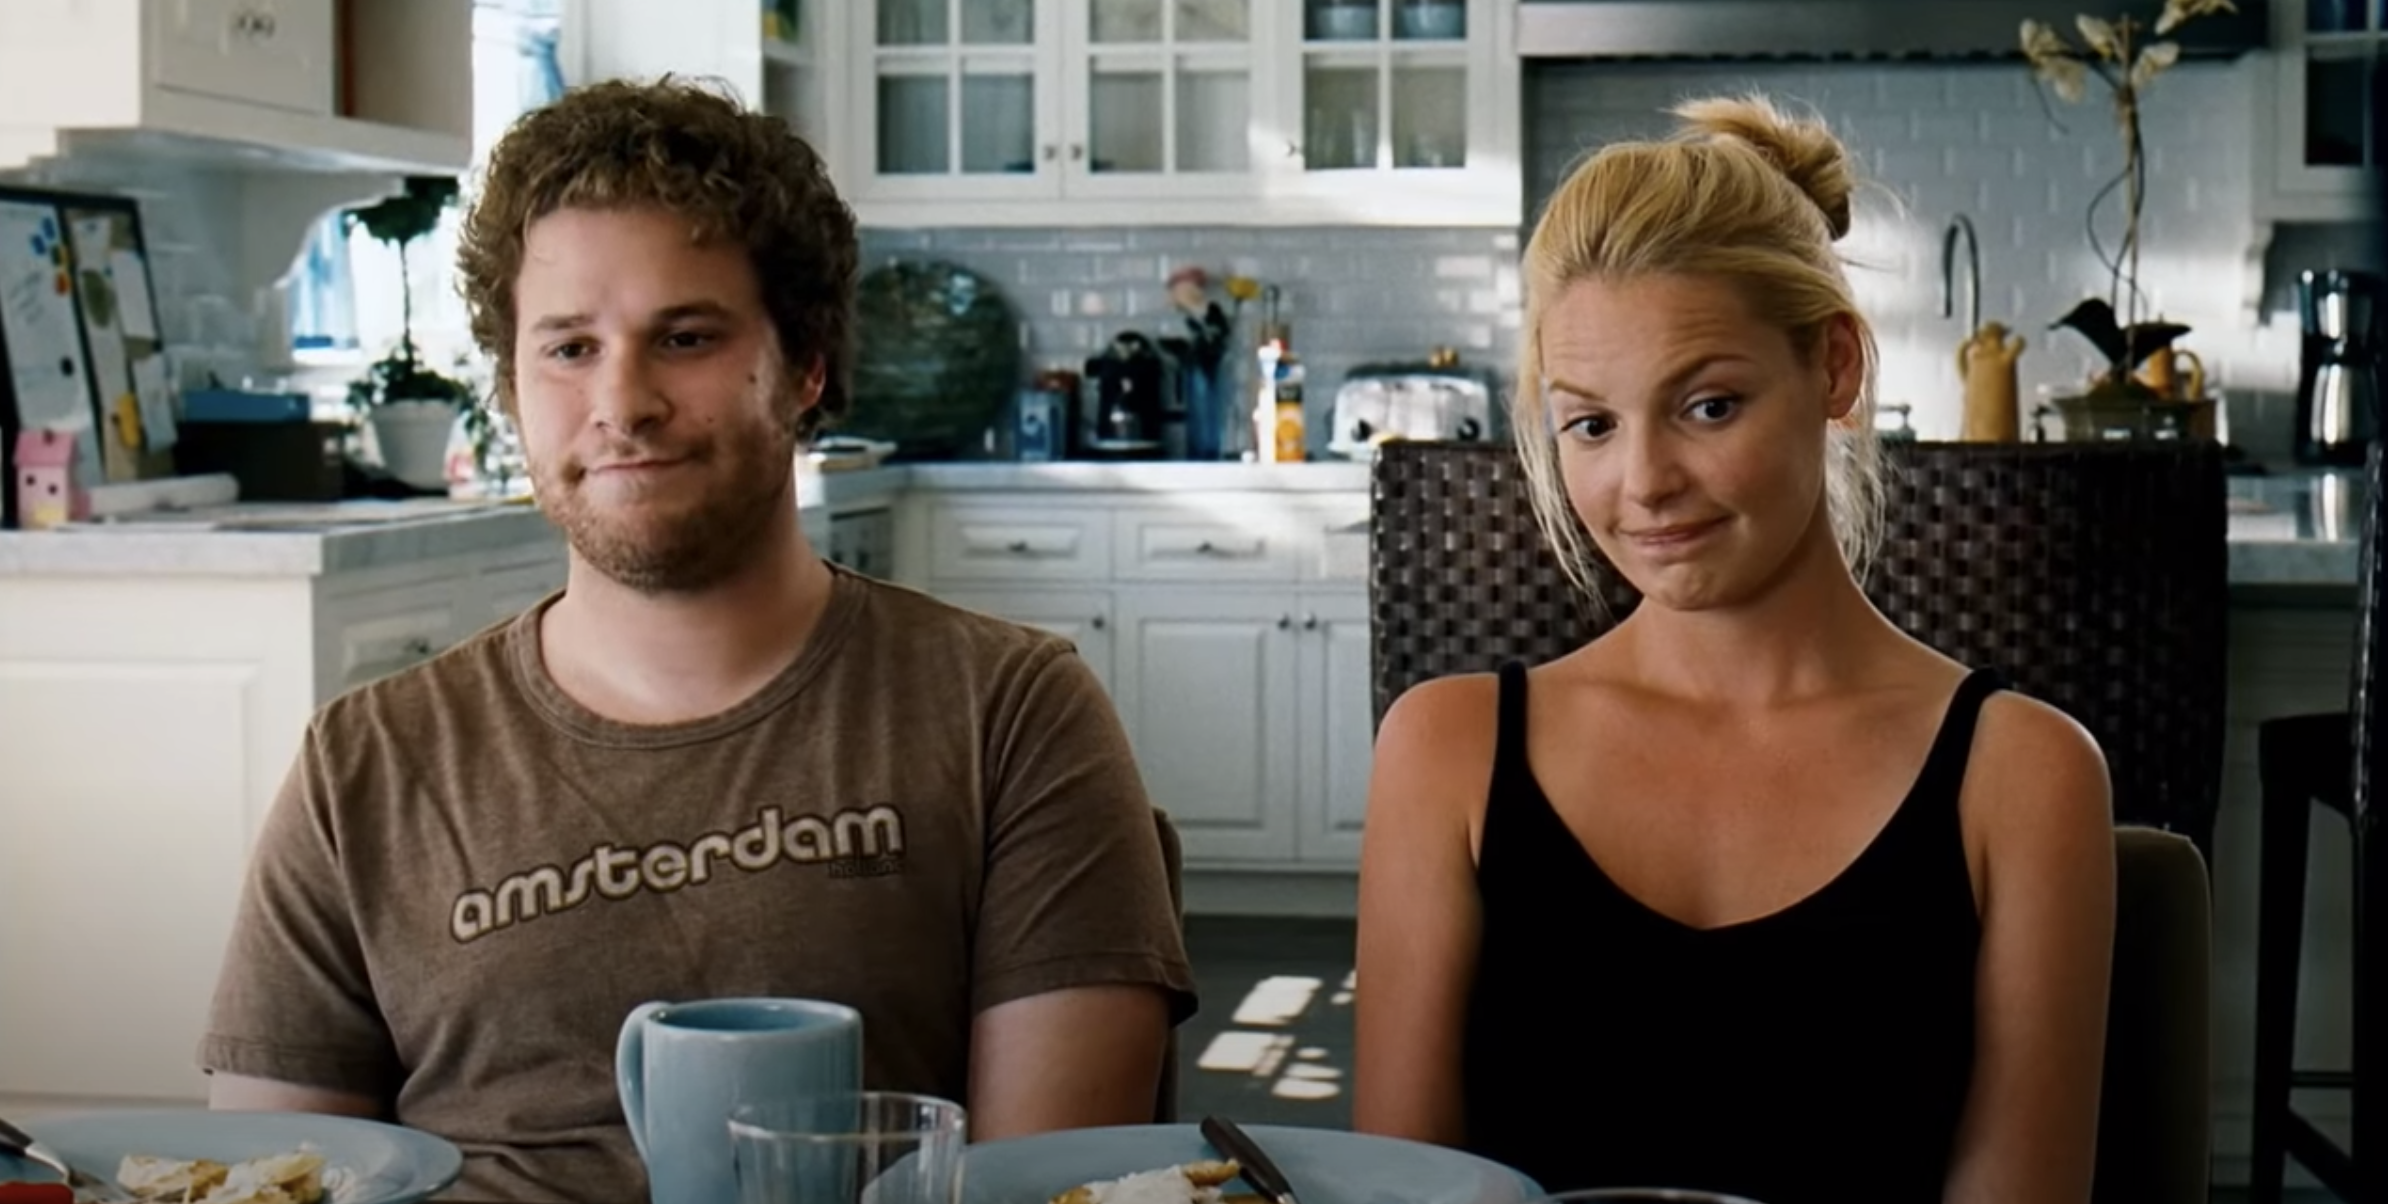 Seth Rogen and Katherine Heigl eating breakfast in Knocked Up